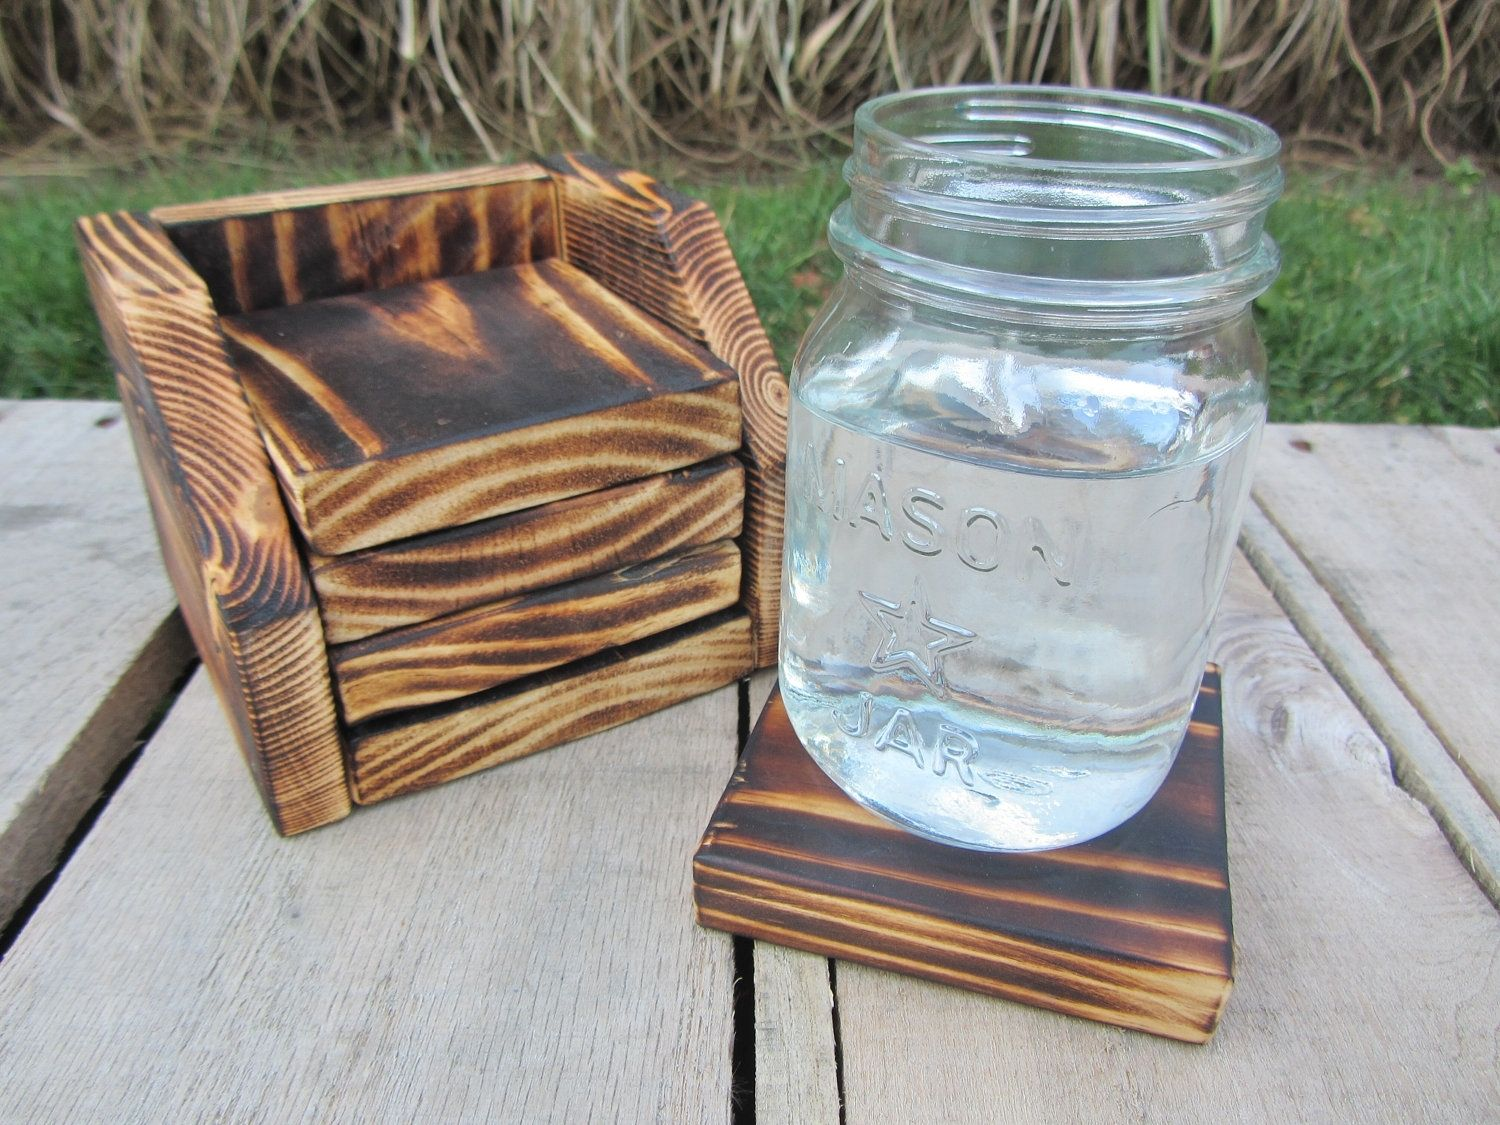 Hand Crafted Coaster Set Of 4 With Holder Made From Reclaimed Pallet Wood By Reclaimed Interior